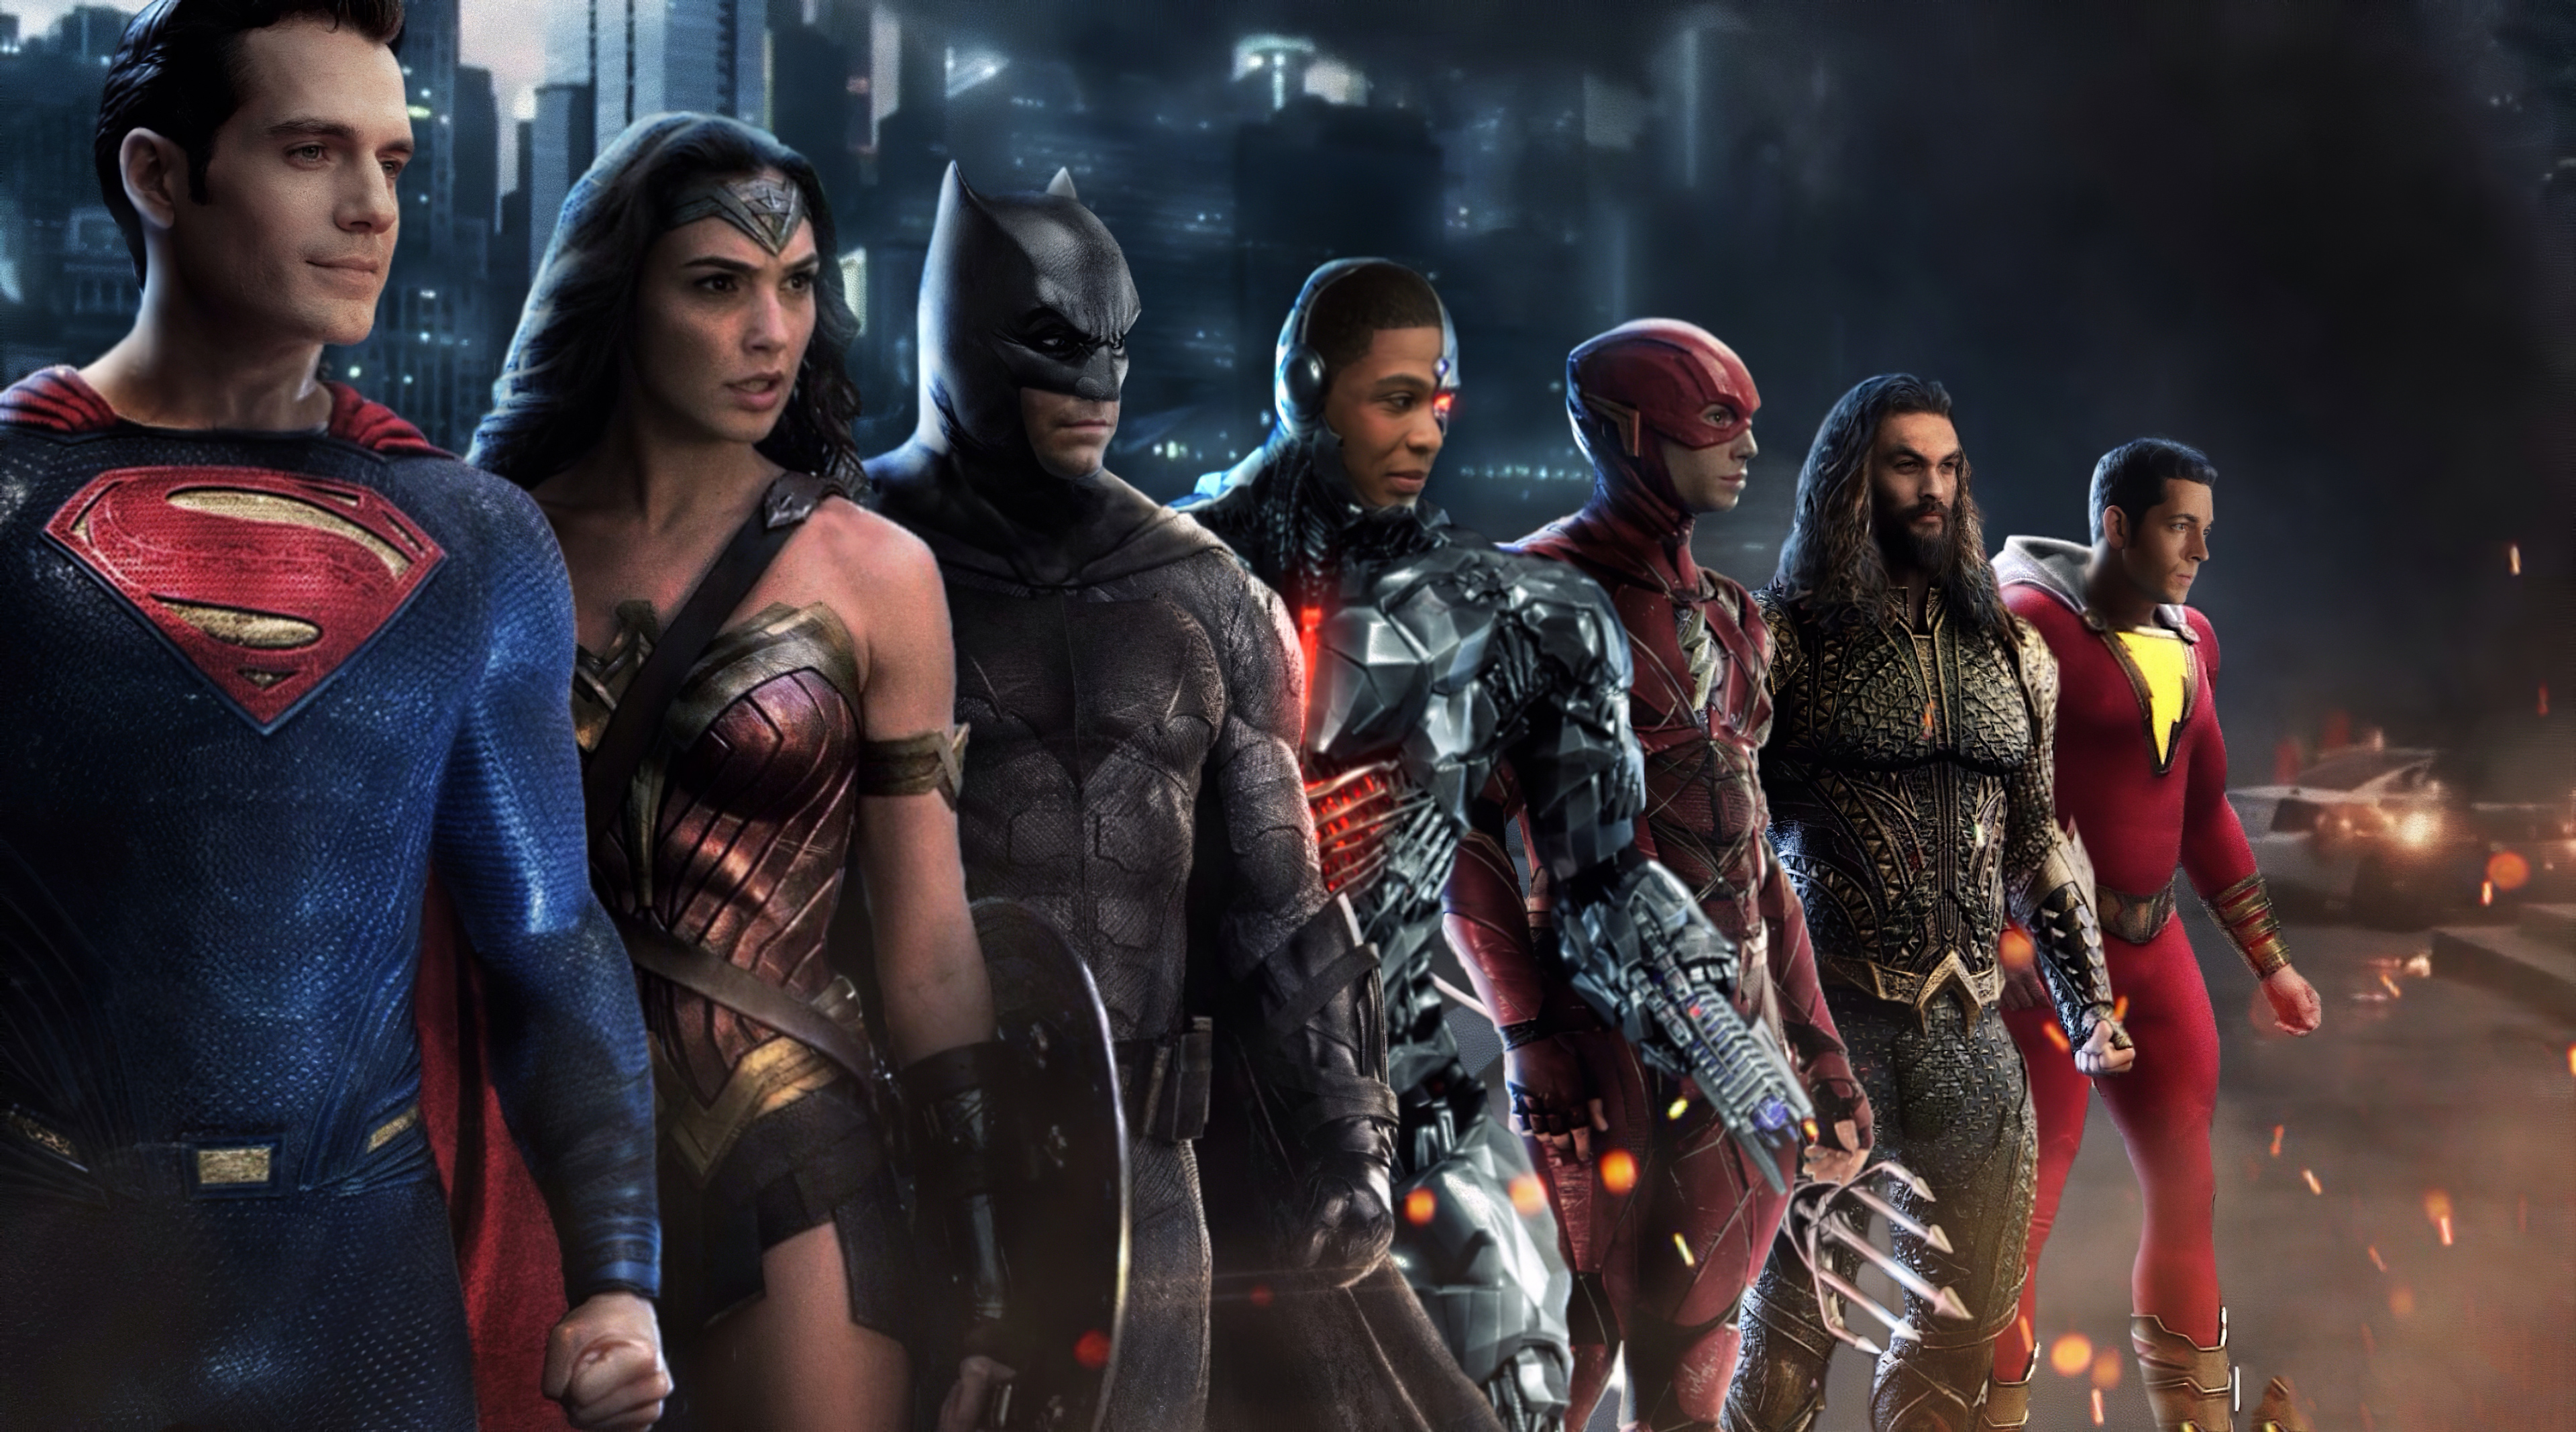 Wallpaper Heroes from Justice League